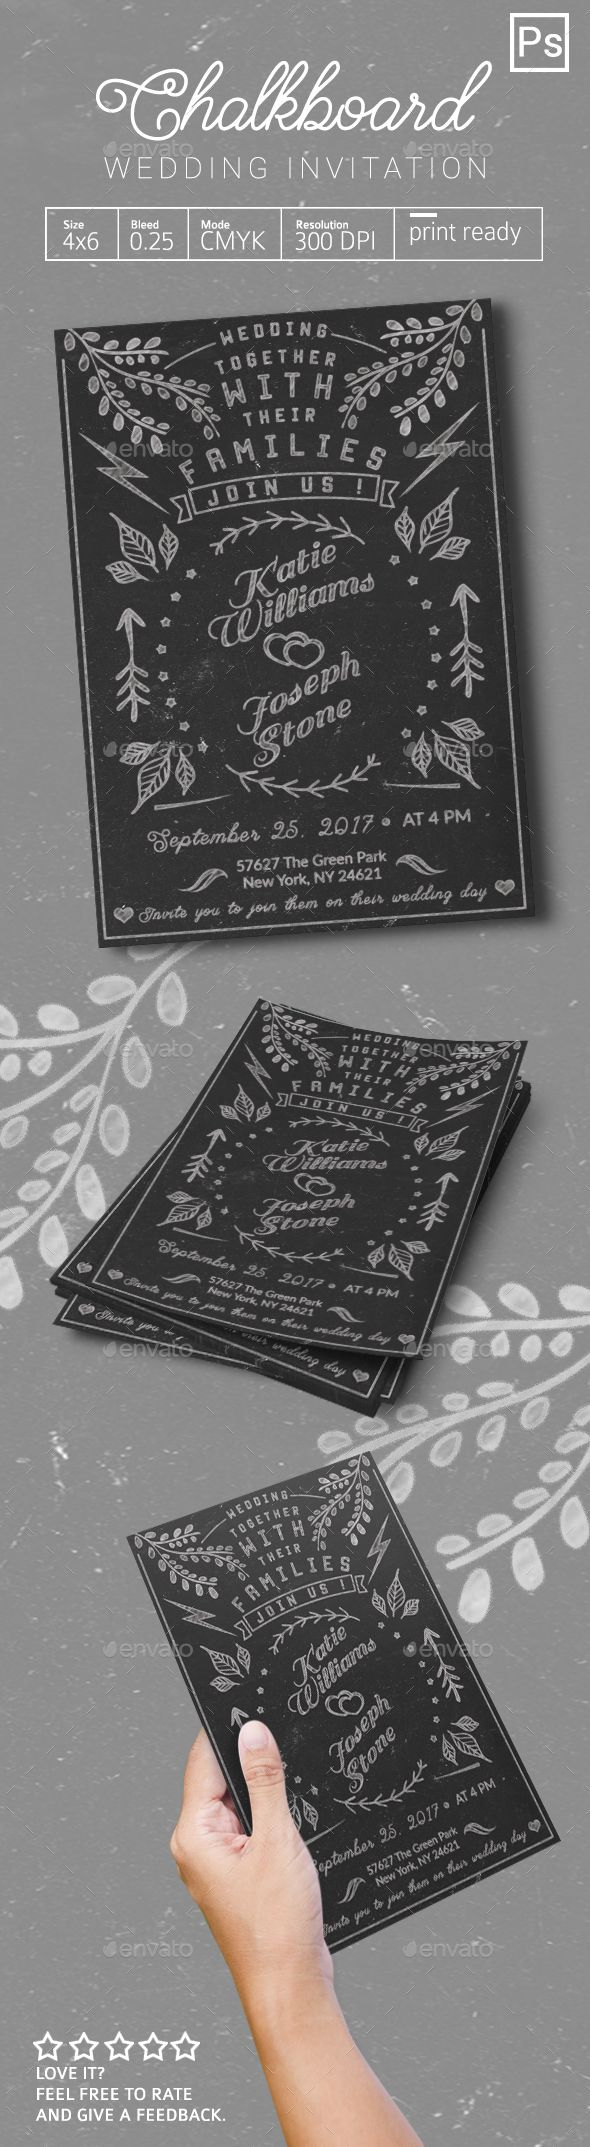 Chalkboard Wedding Invitation - Weddings Cards & Invites